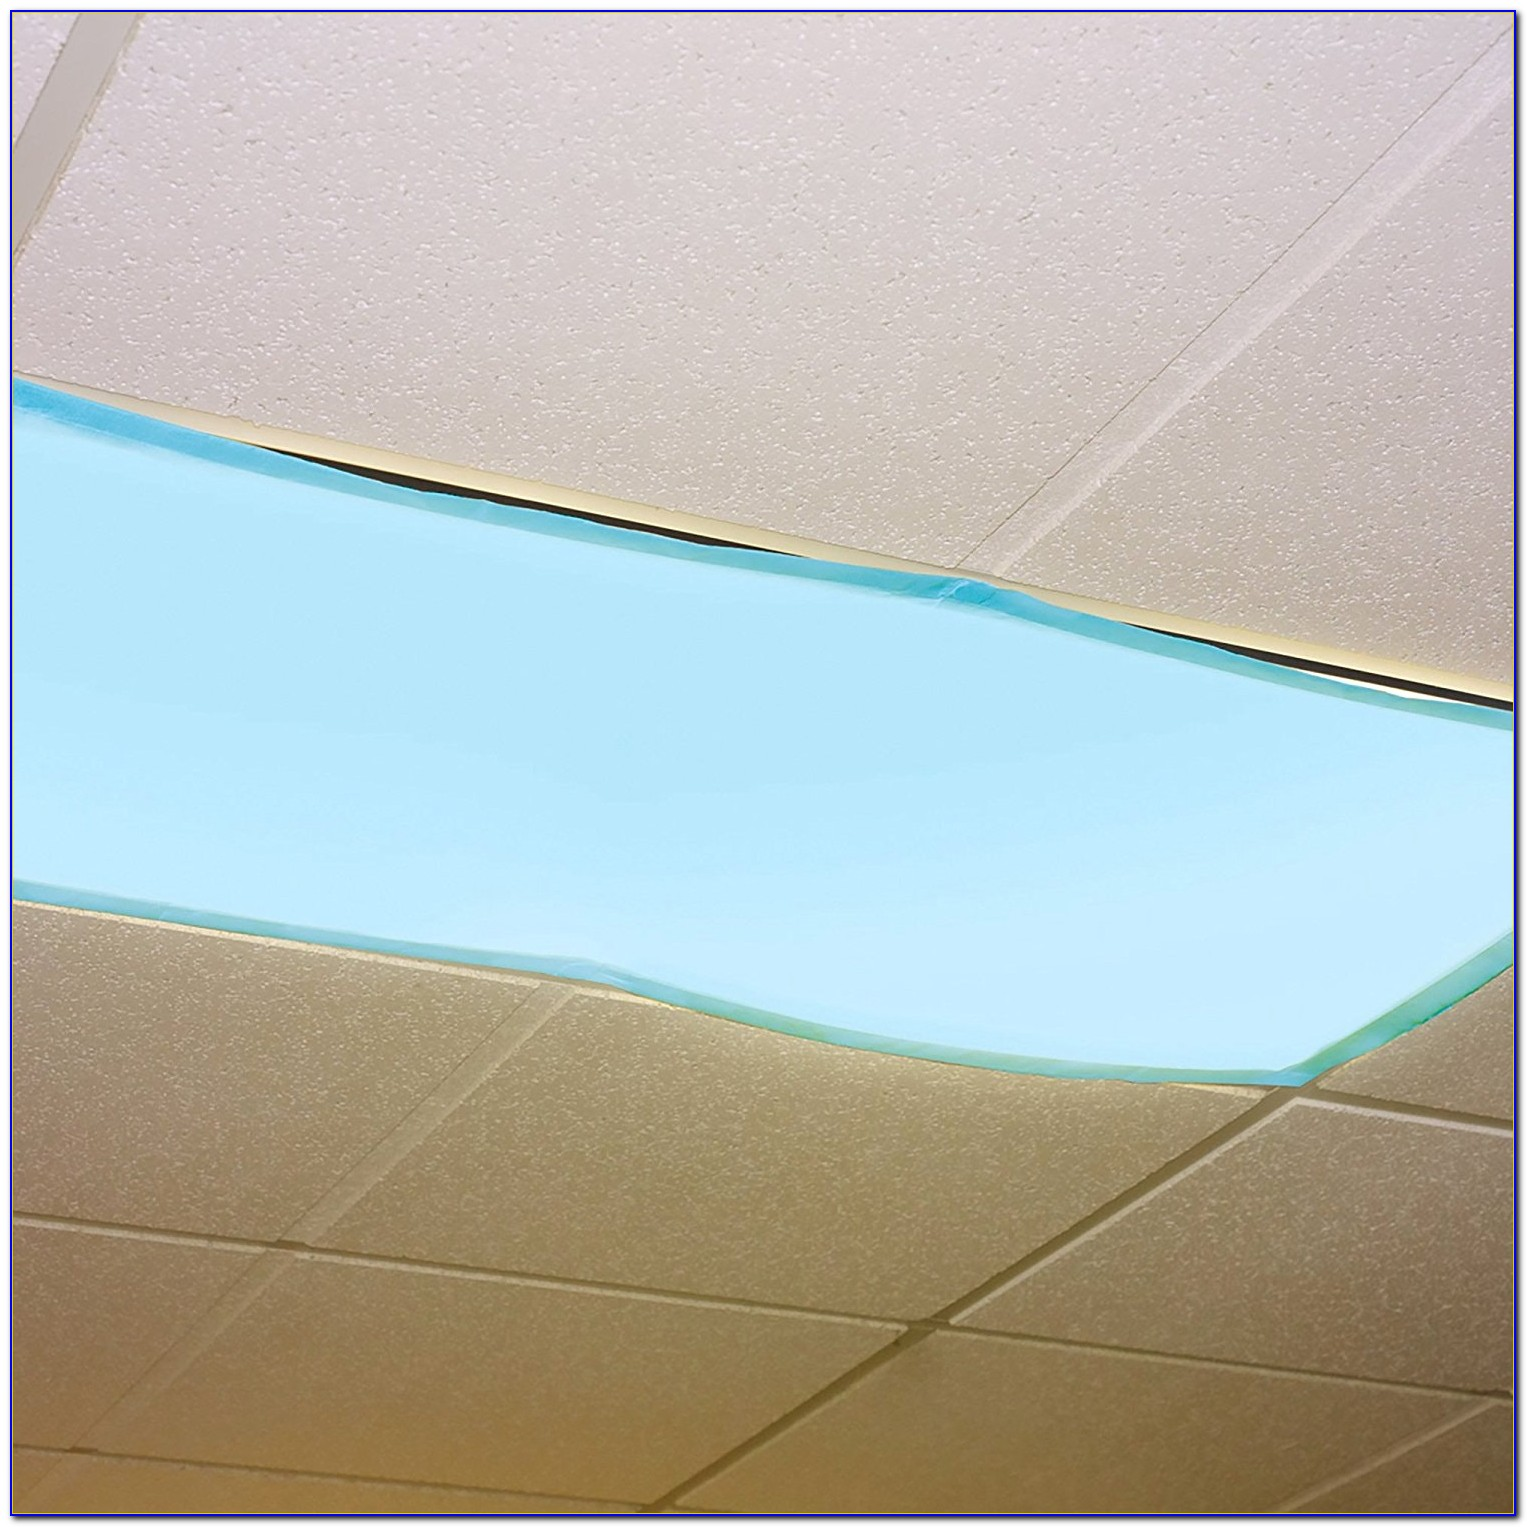 Cover Fluorescent Ceiling Lights